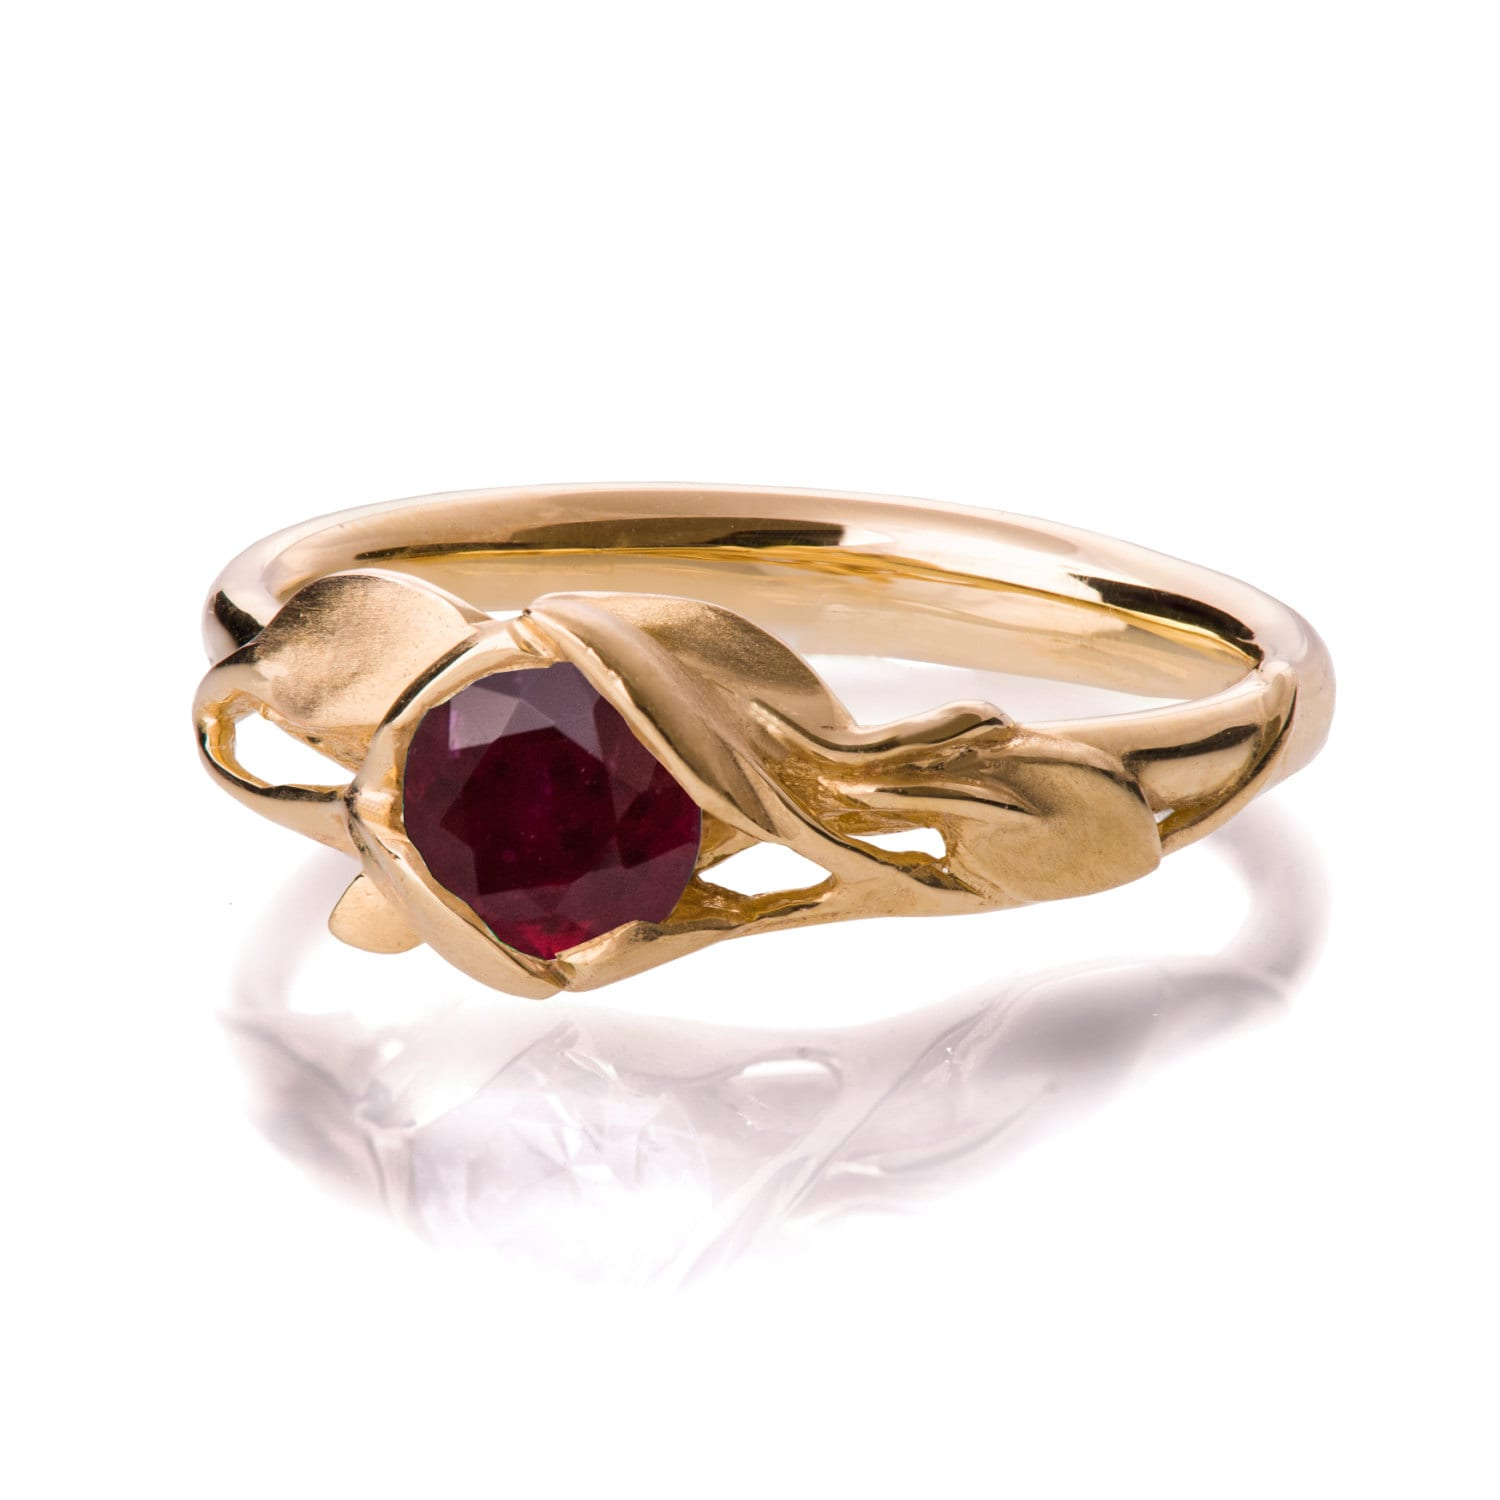 Leaves Engagement Ring 18K Yellow Gold and Ruby engagement